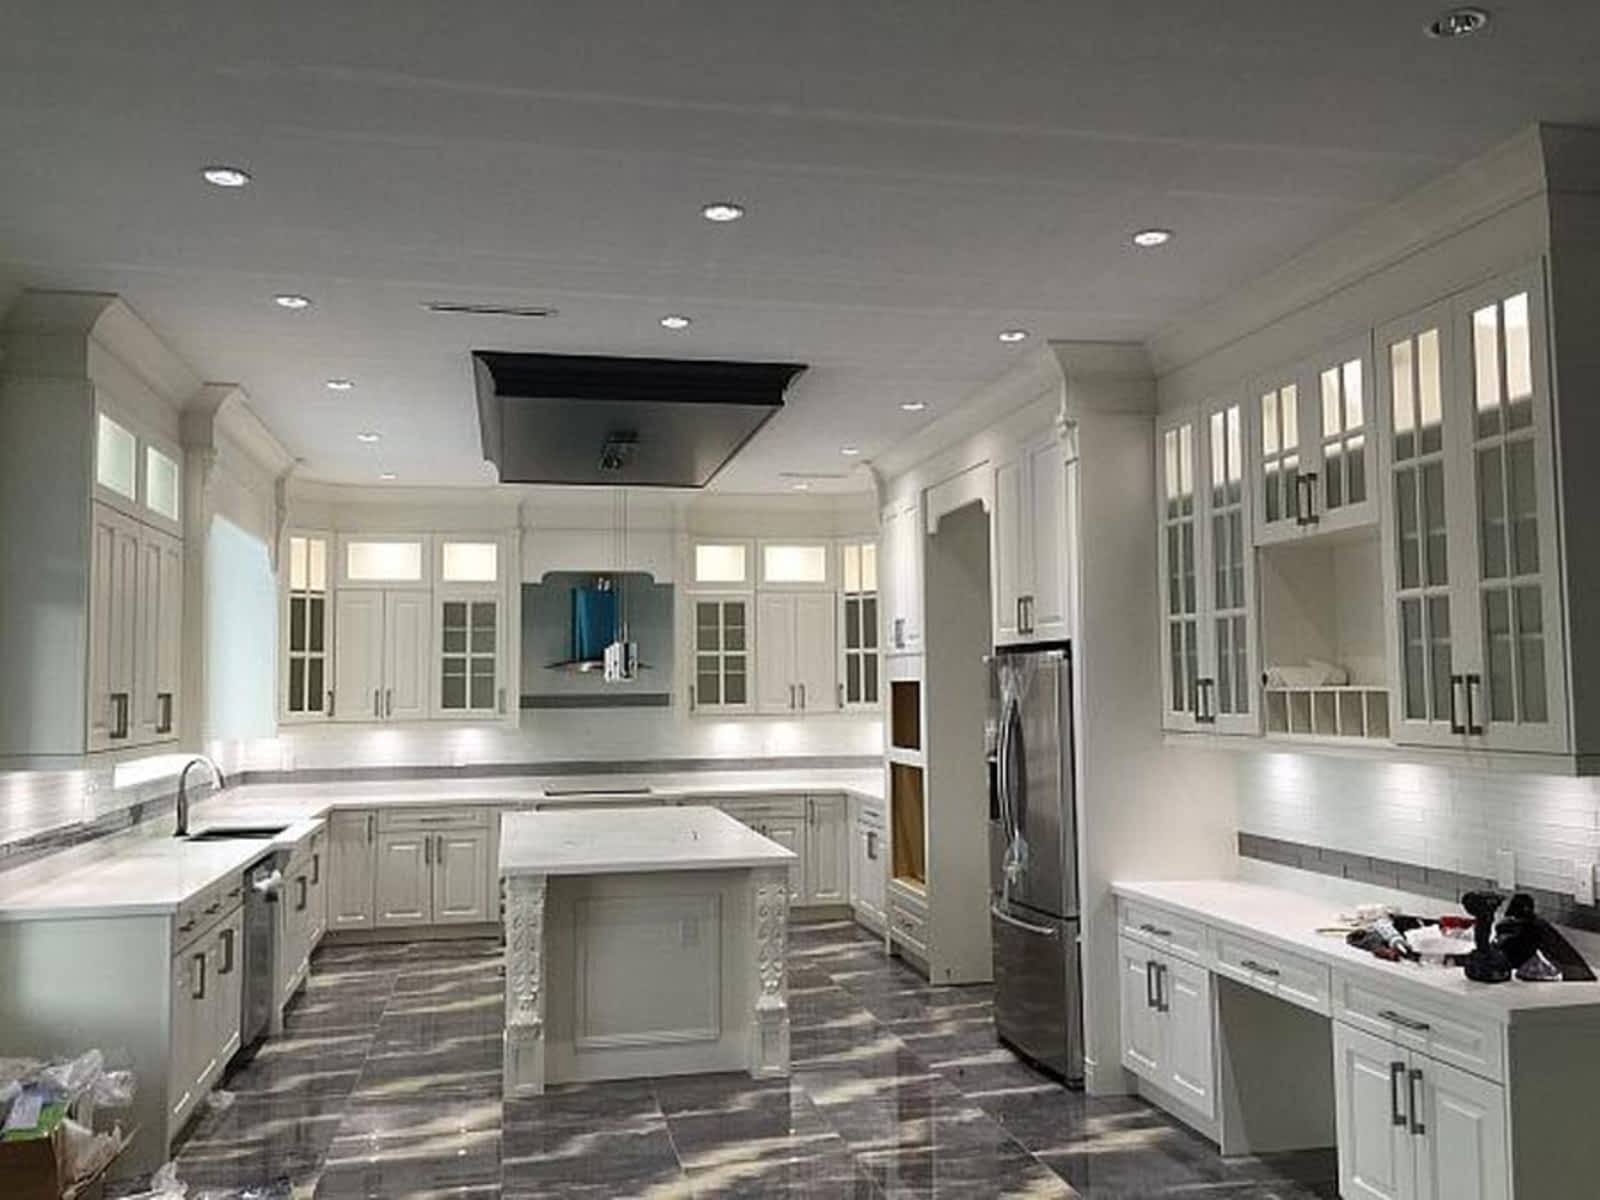 legacy kitchen cabinets hotel chains with kitchens ltd opening hours 104 12940 80 ave surrey bc